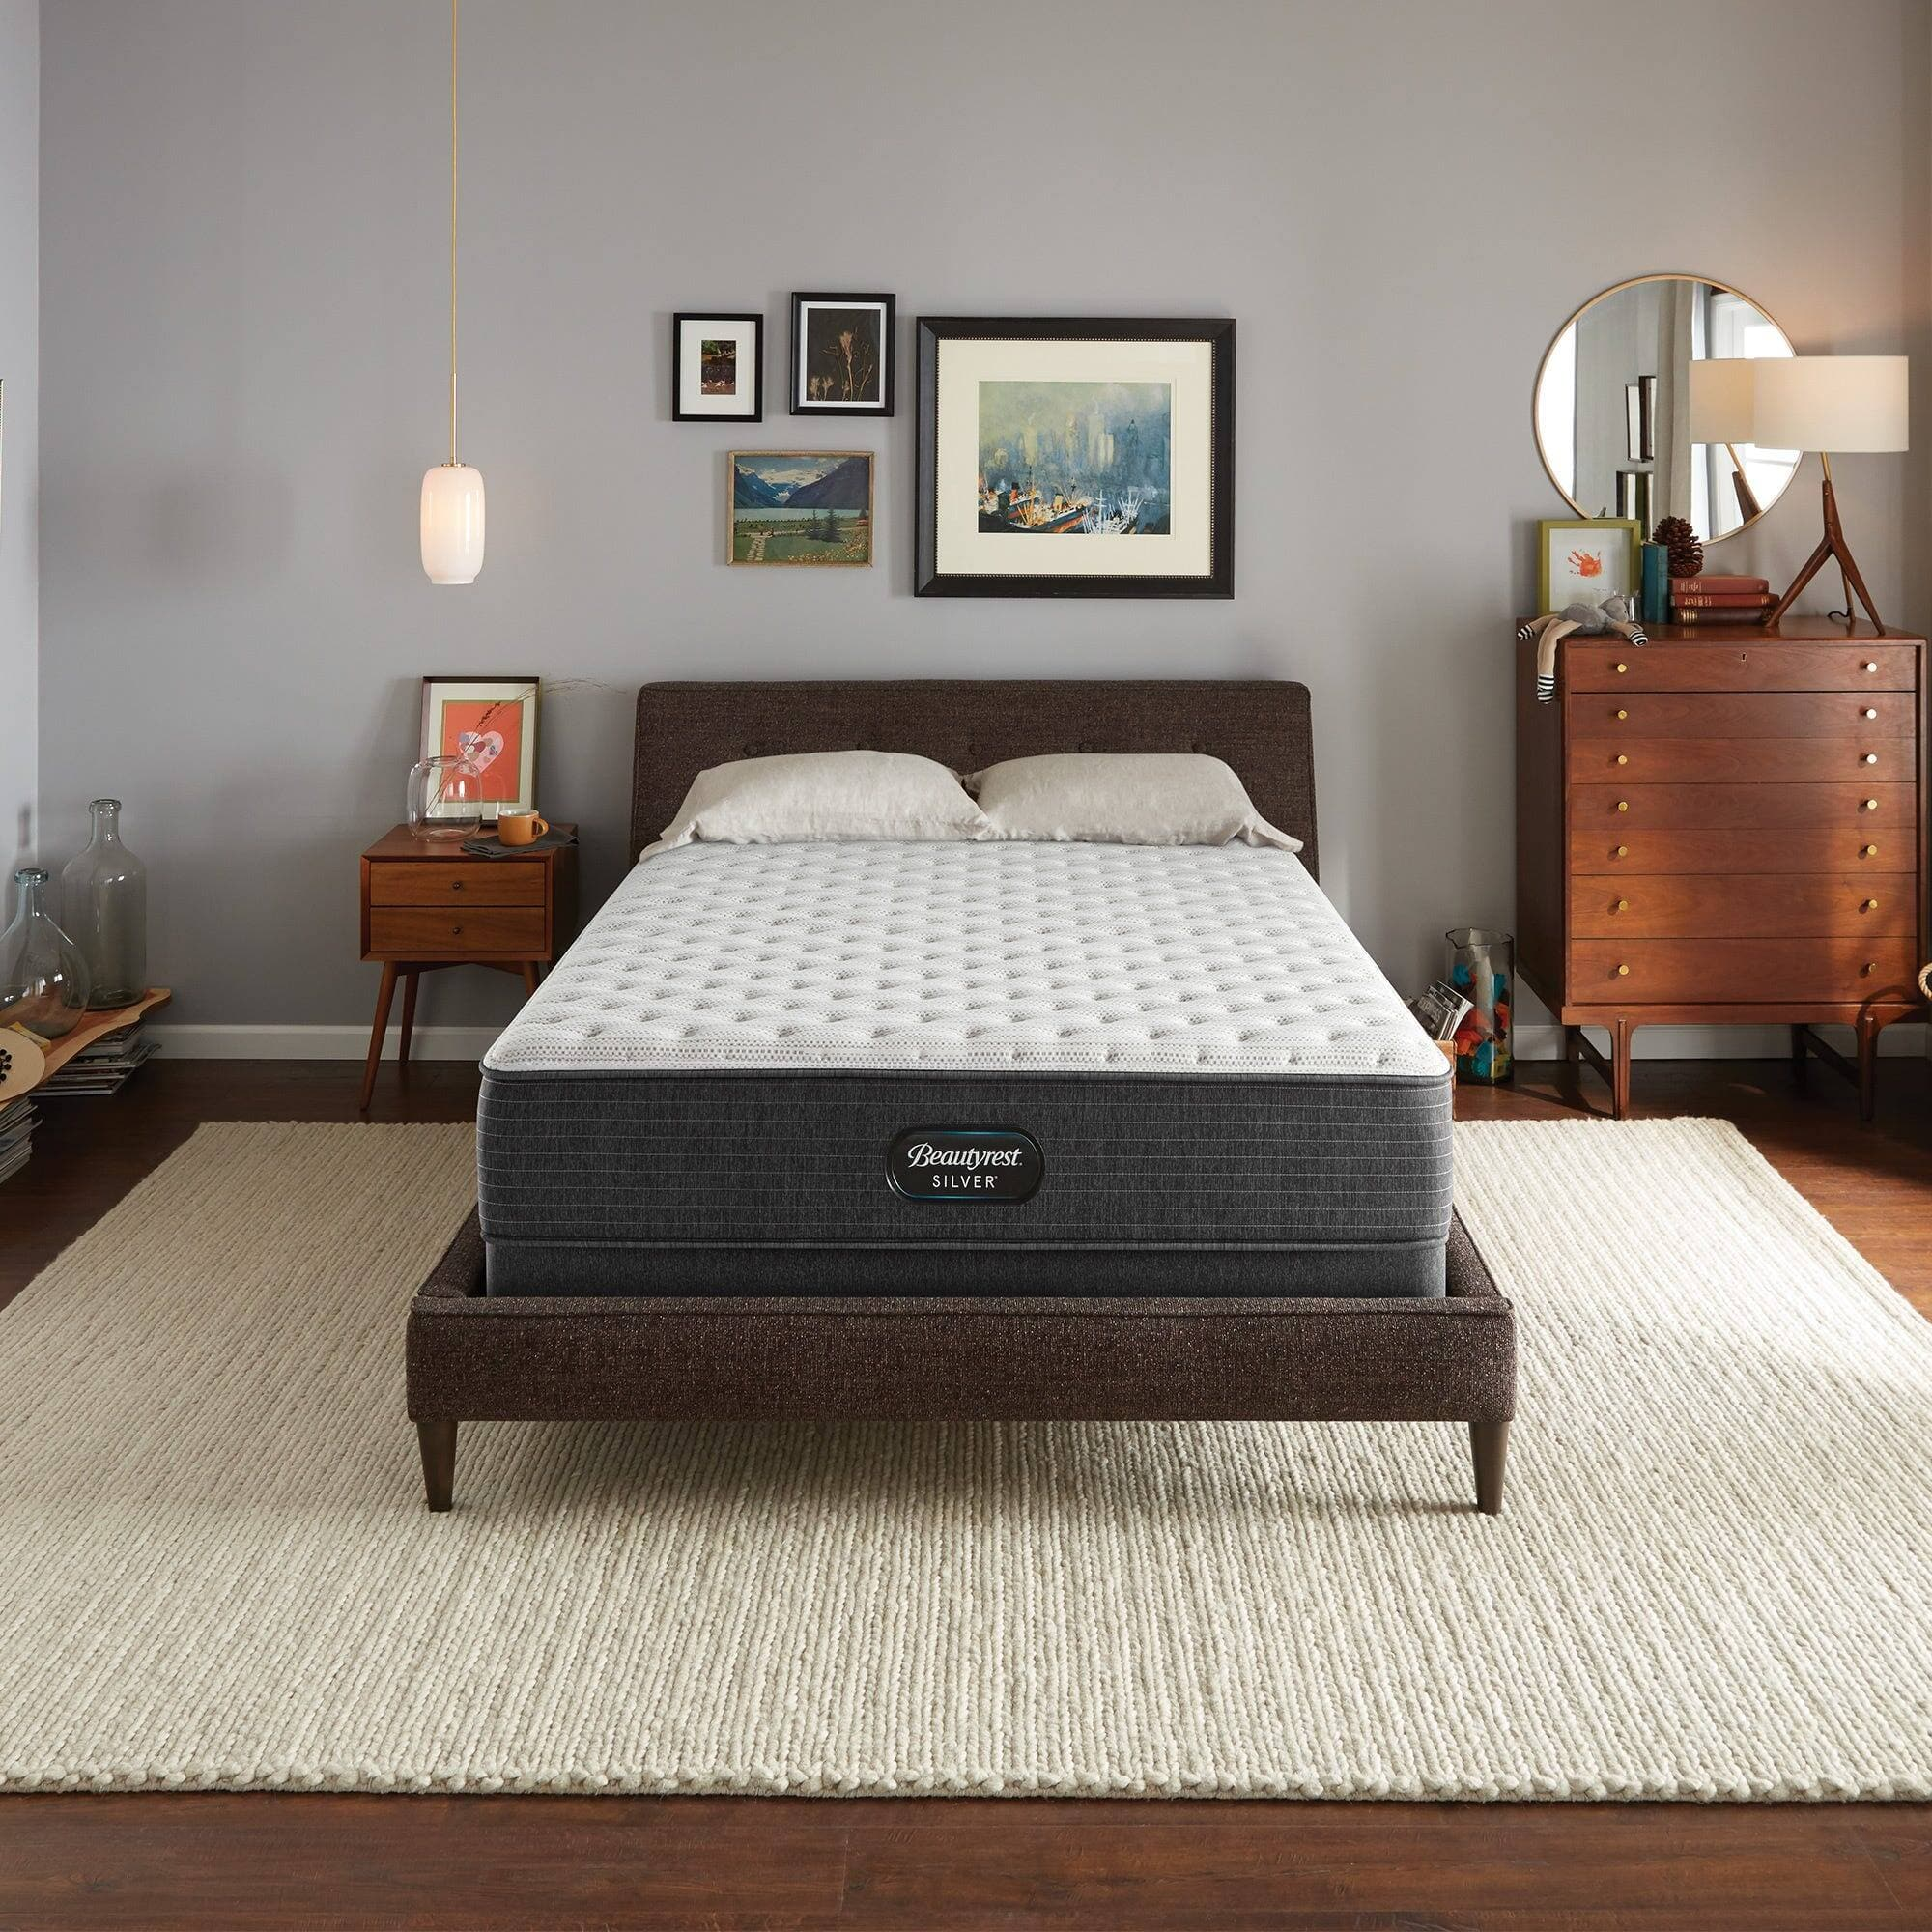 """Simmons Beautyrest BRS900 11.75"""" Pocketed Coil & Foam Mattress 